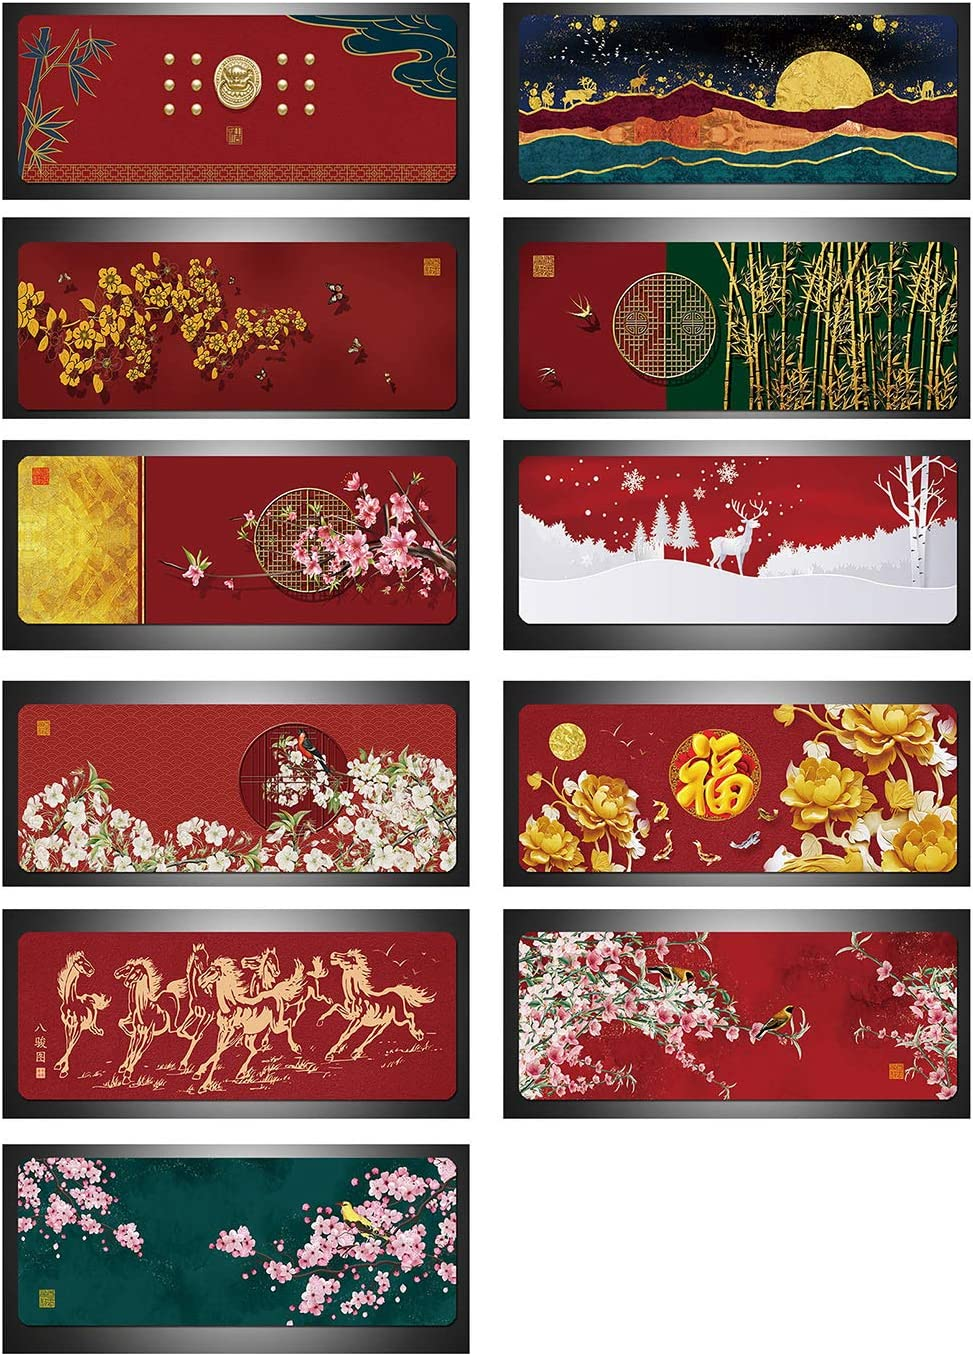 Liveinu Large Office Desk Pad Mouse Pad,Chinese Classical Style,Non-Slip Waterproof Mouse Mat Desk Blotter Protector 3mm 55.1 x 27.6